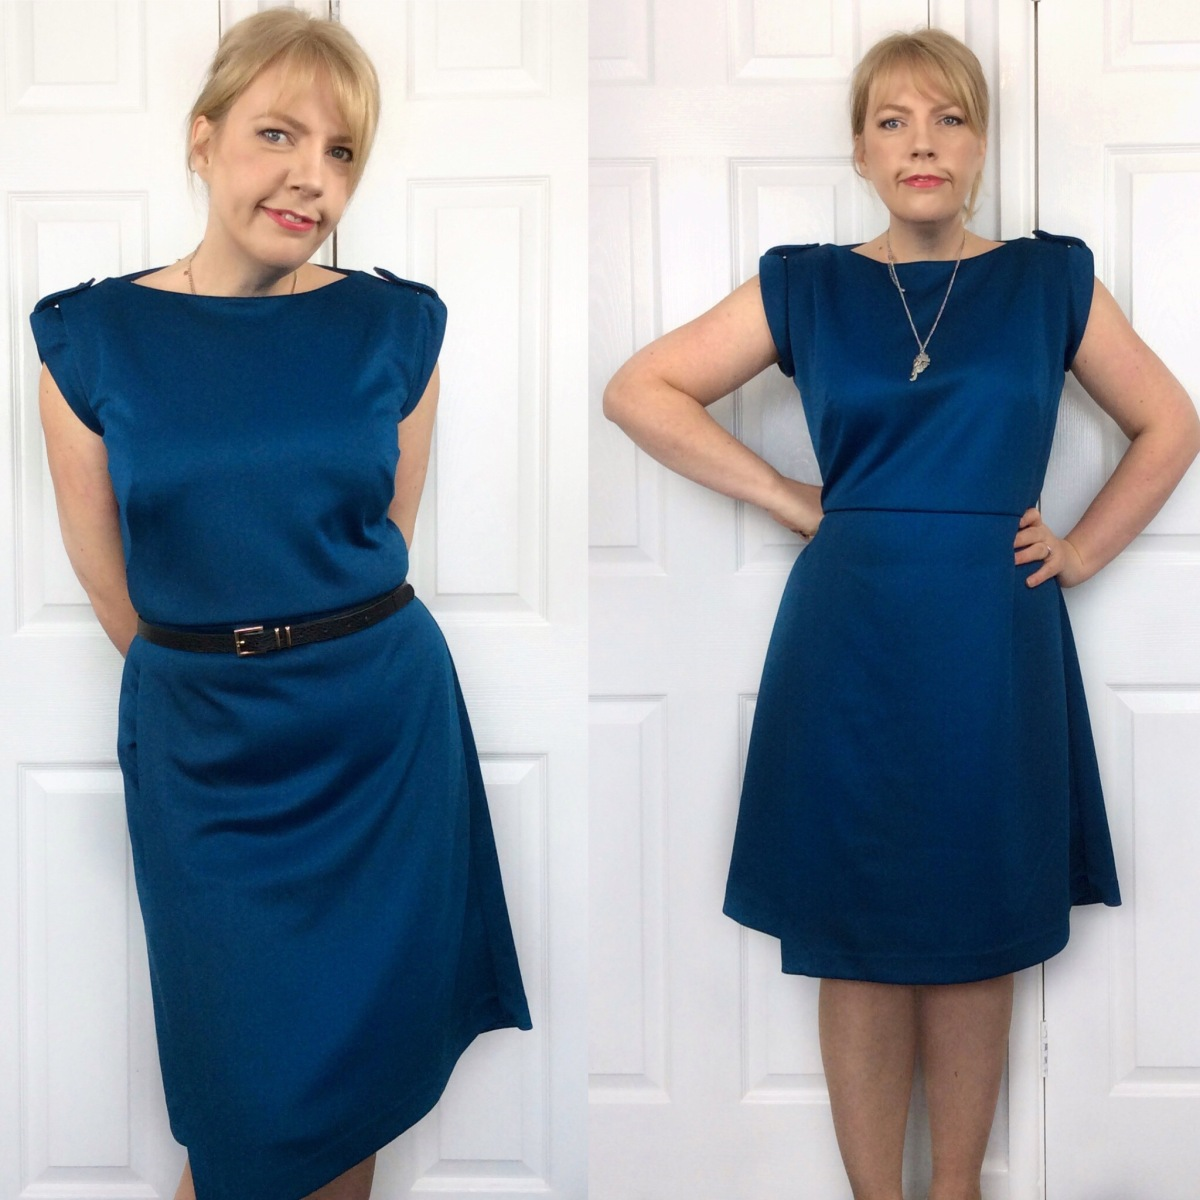 'Project Runway' Scuba Dress - Simplicity 8213 #MCBN